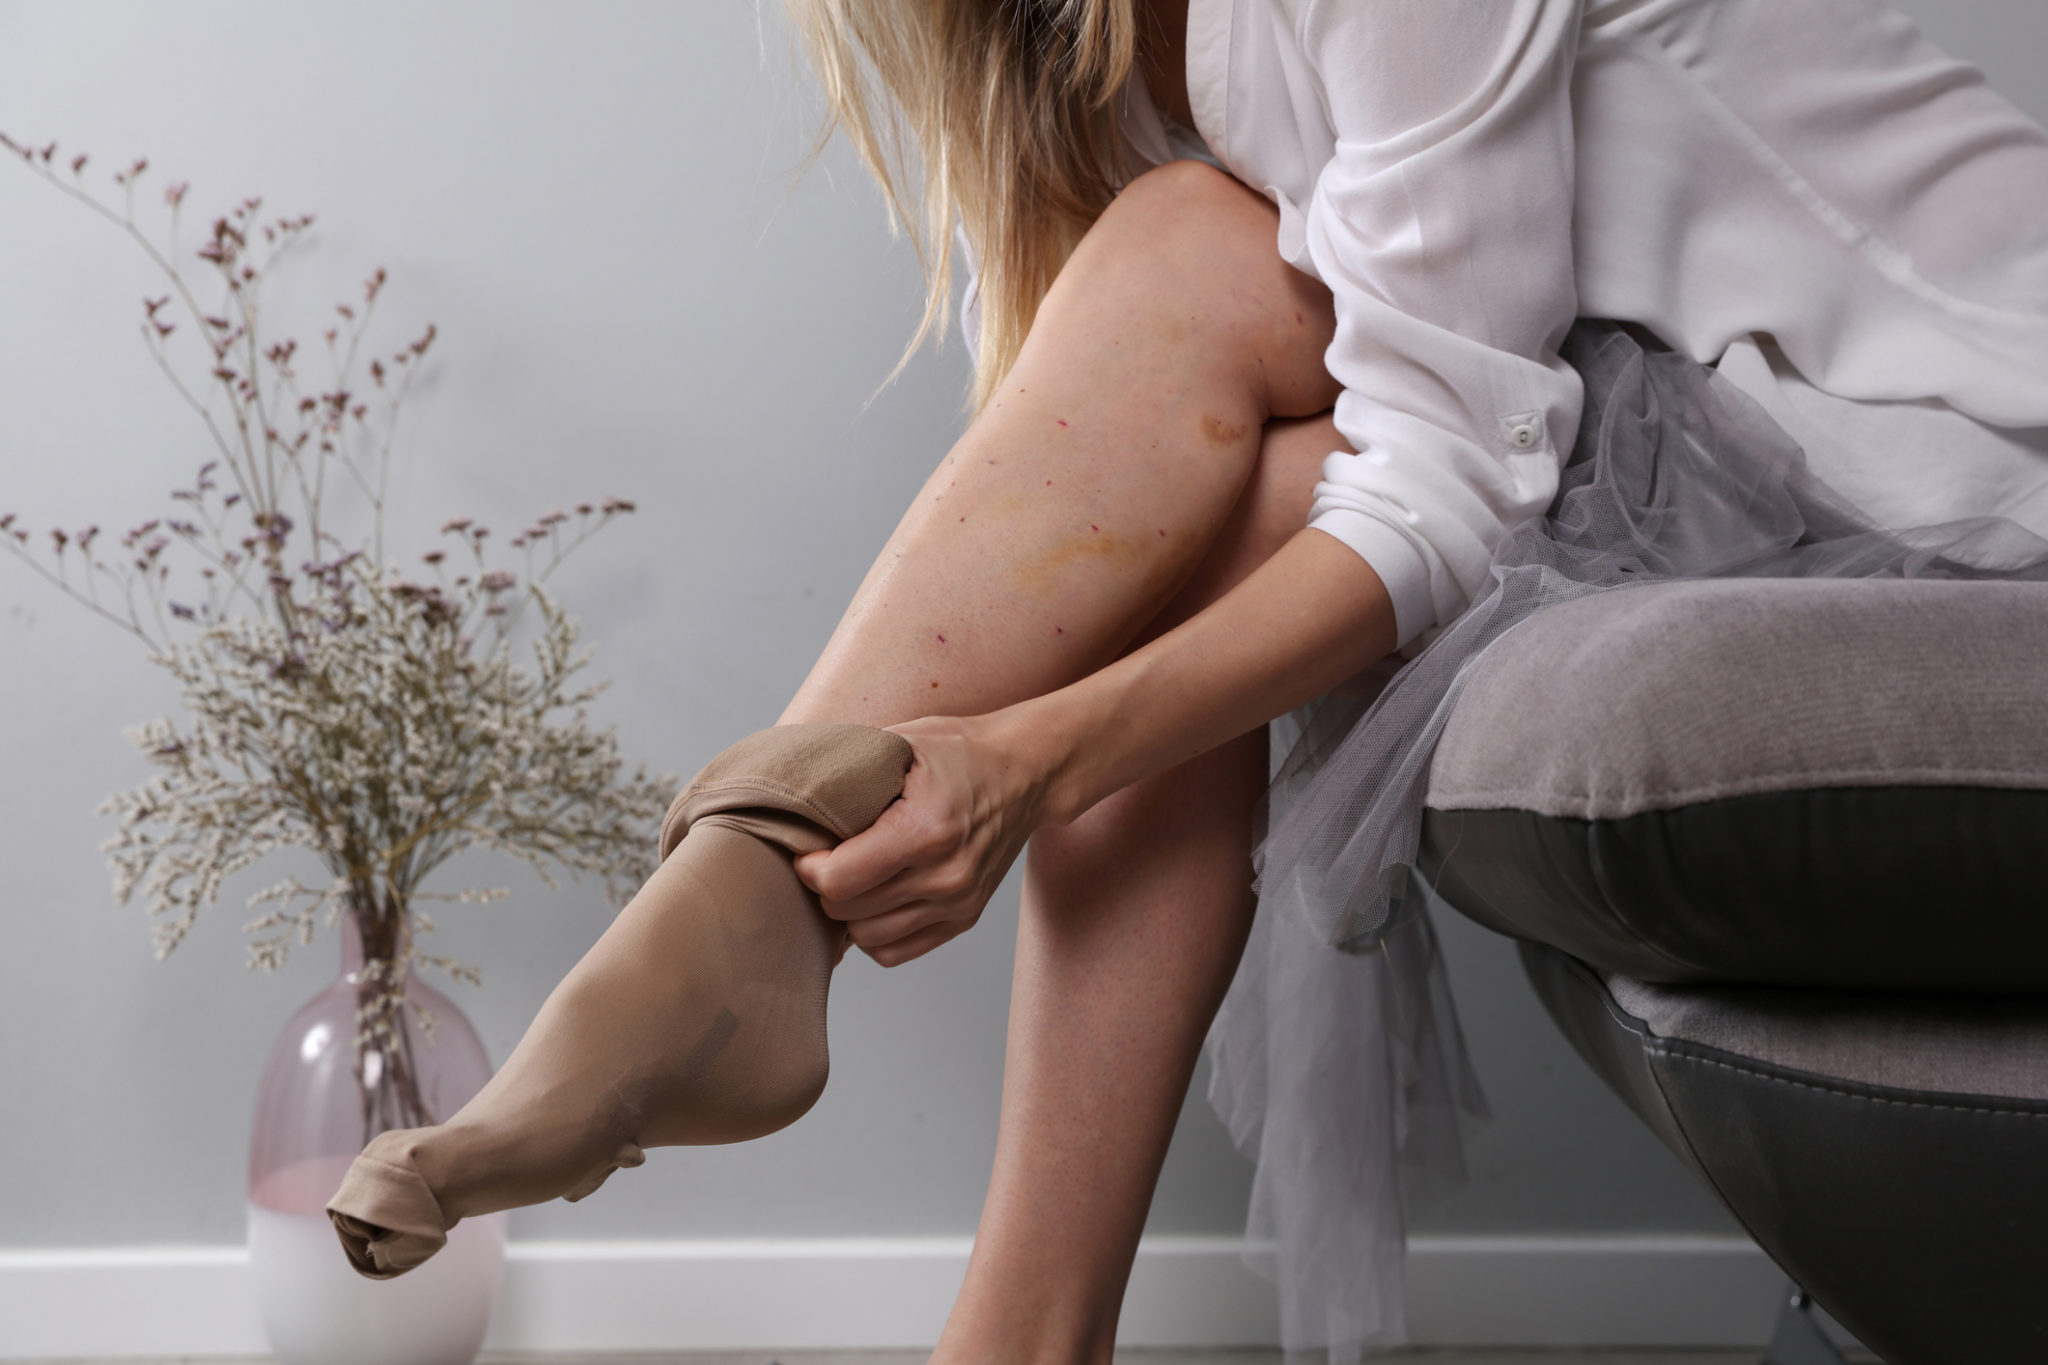 A woman putting on compression stockings to treat and prevent varicose veins